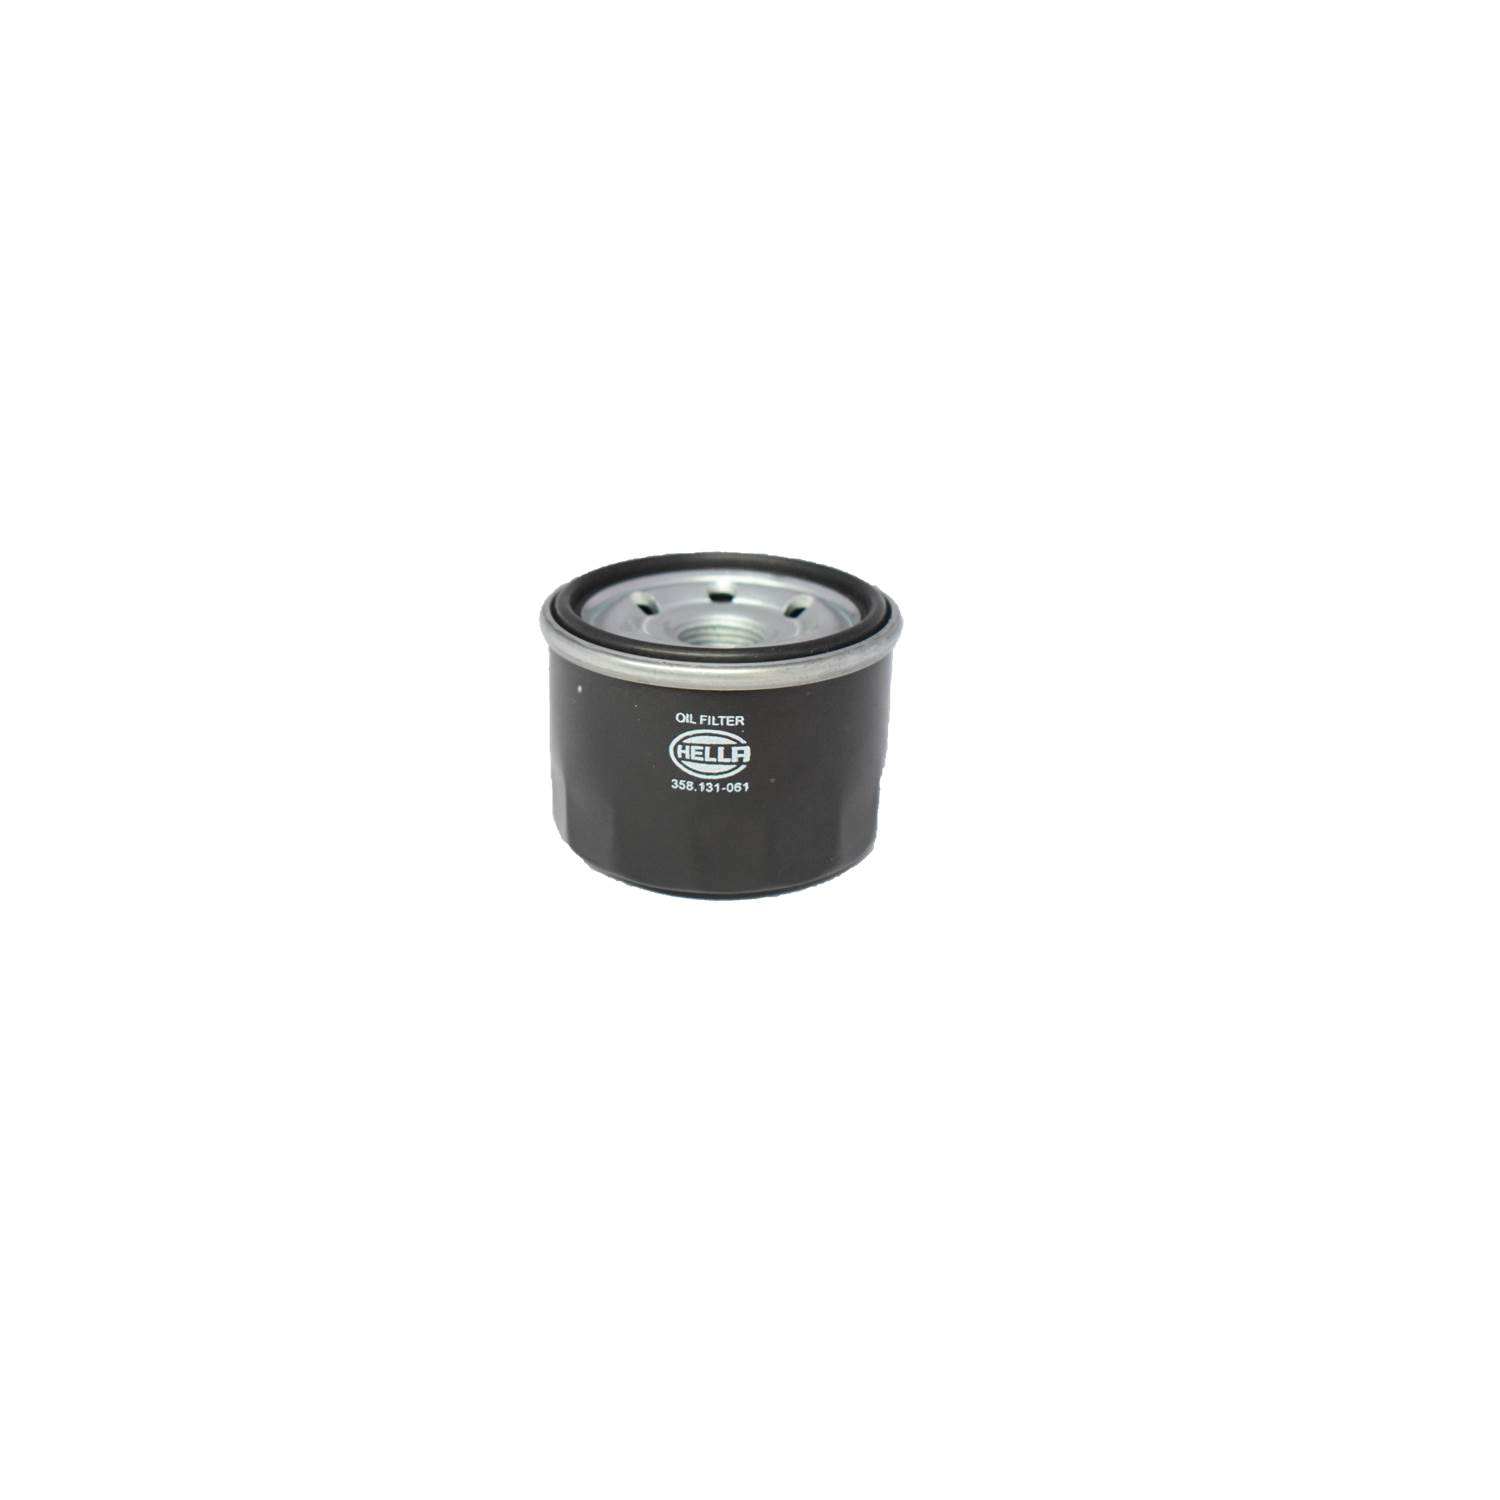 HELLA  358131061  Oil Filter Maruti Wagon-R K Series (P)